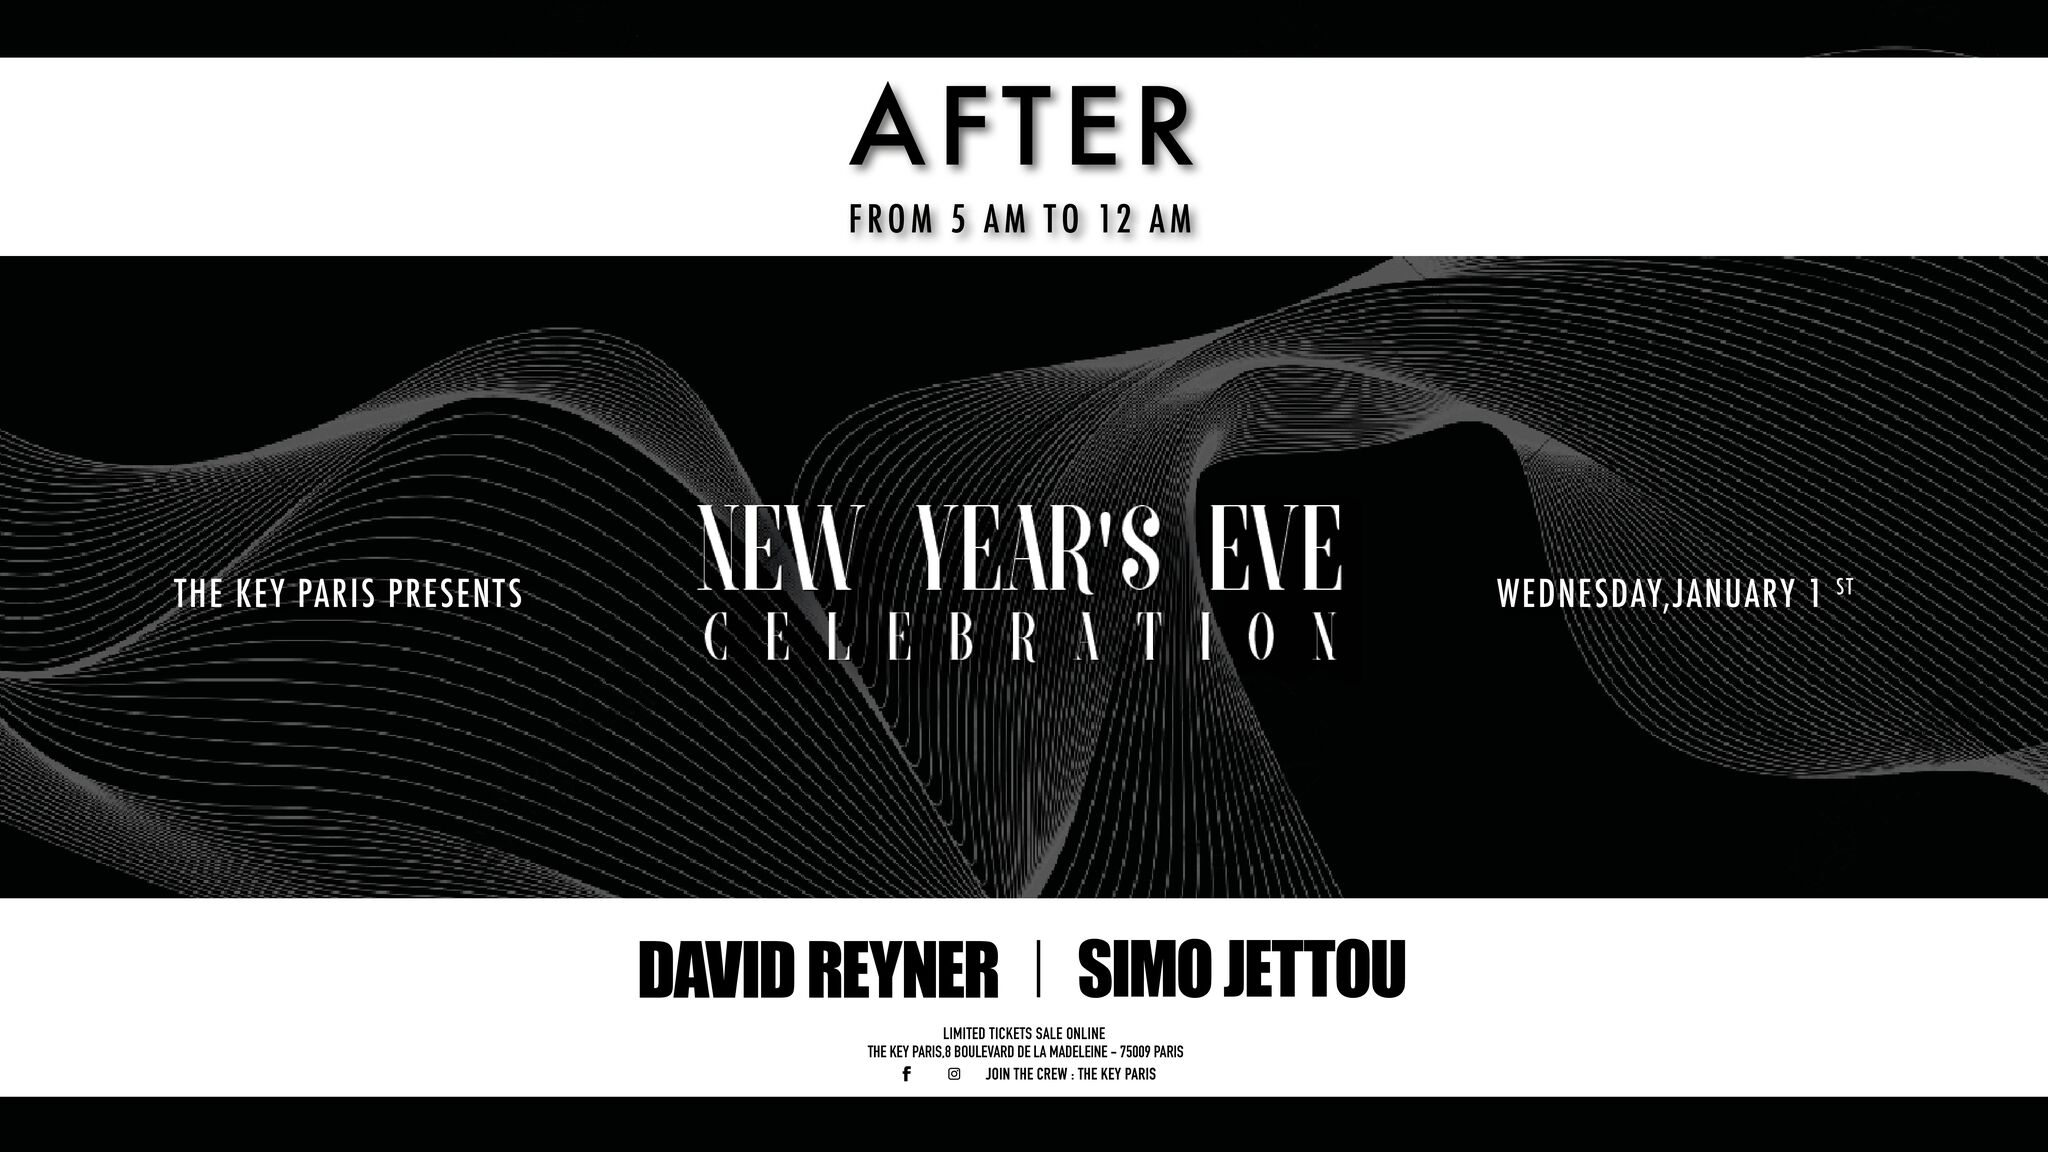 The Key Paris presents : New Year After Party